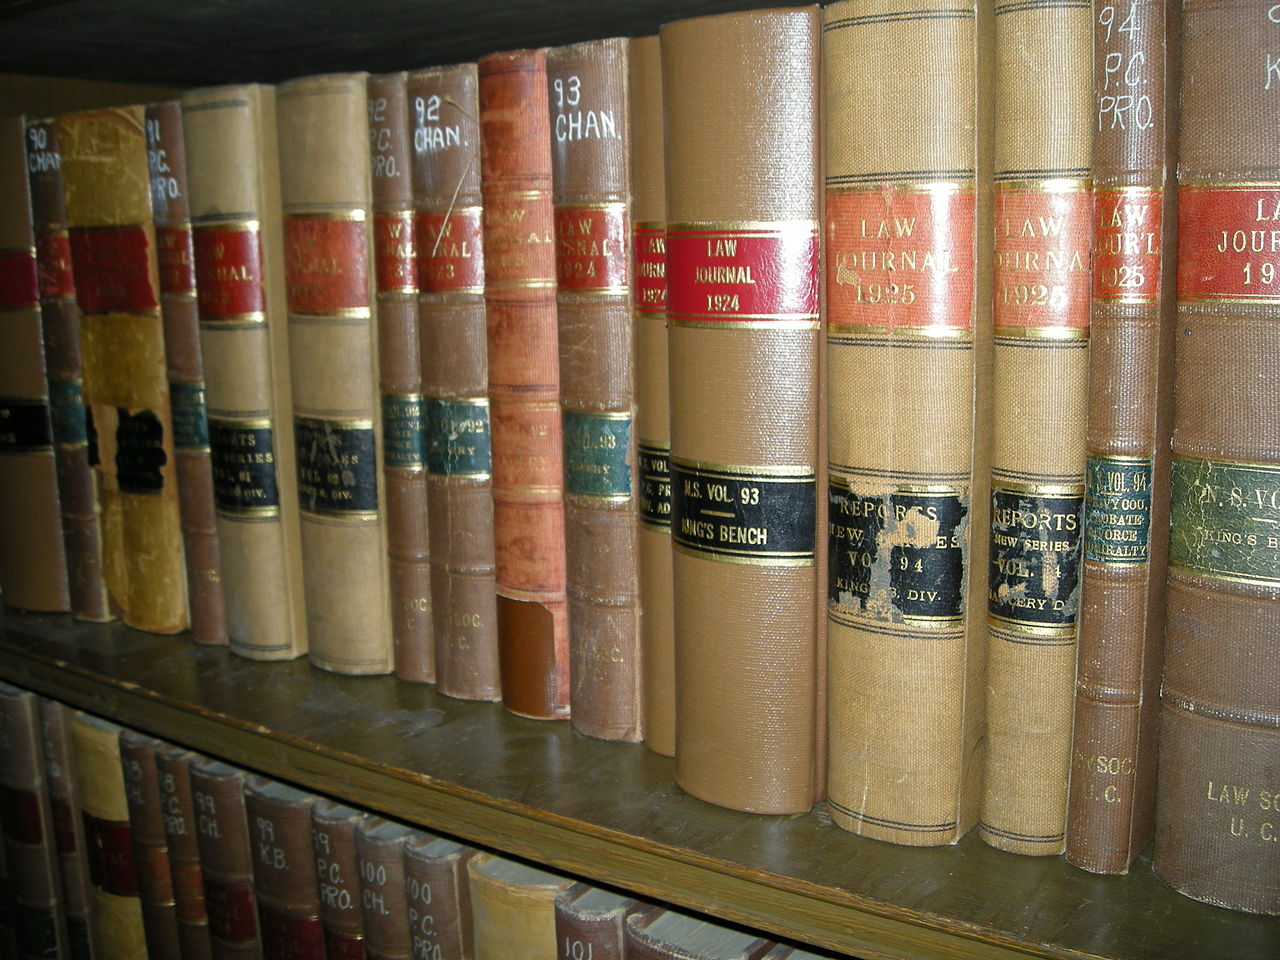 Law_journals_in_the_Great_Library